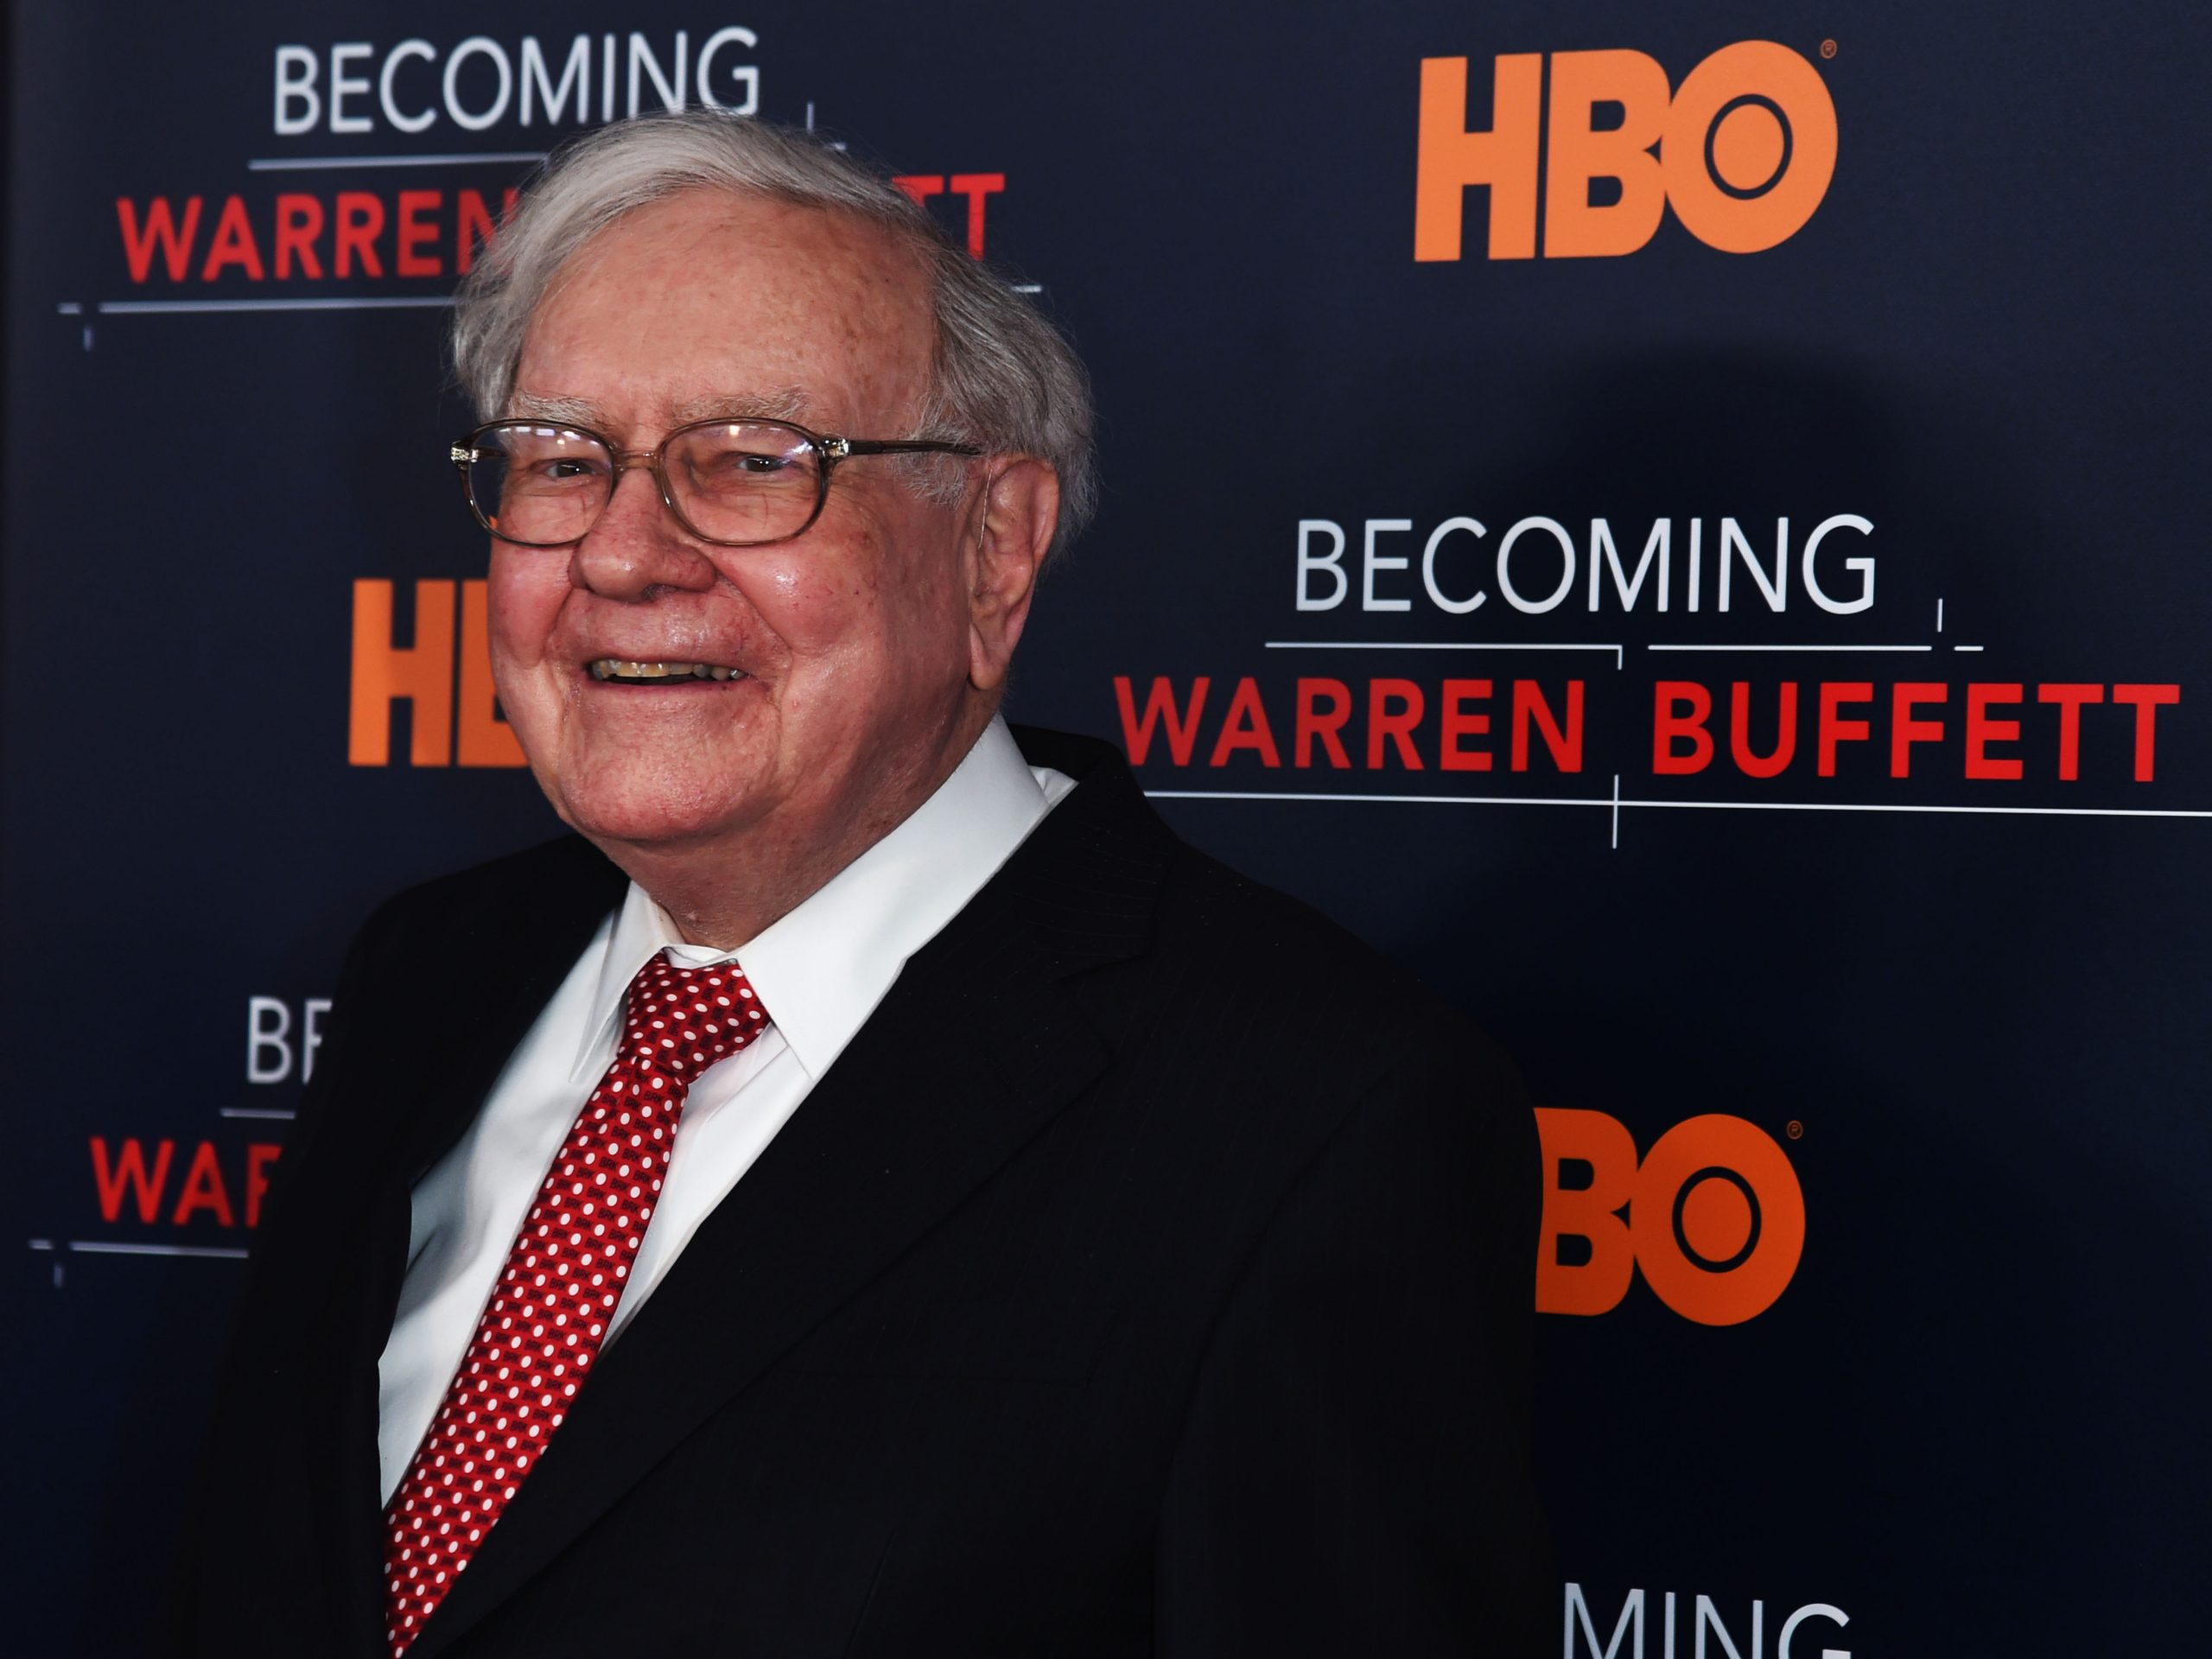 Becoming Warren Buffett